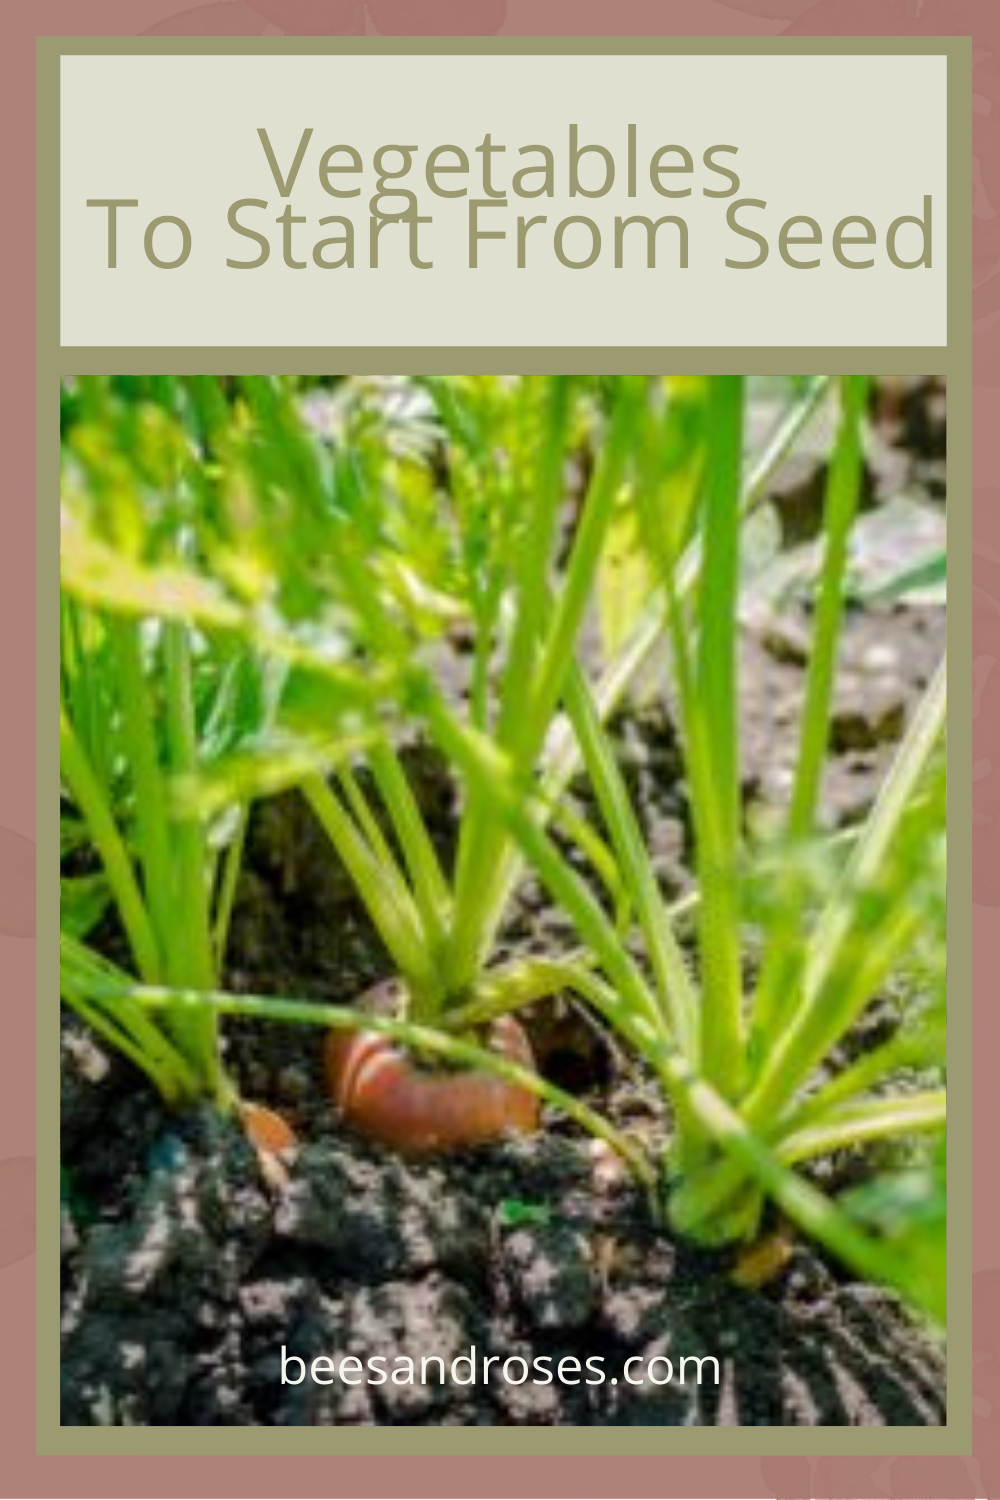 Gardening for beginners tips for Vegetables to start from seed. Learn about the vegetables that do well starting from seed. #gardeningtips #gardeningforbeginners#vegetables #Startingseeds #beesandrosesblog